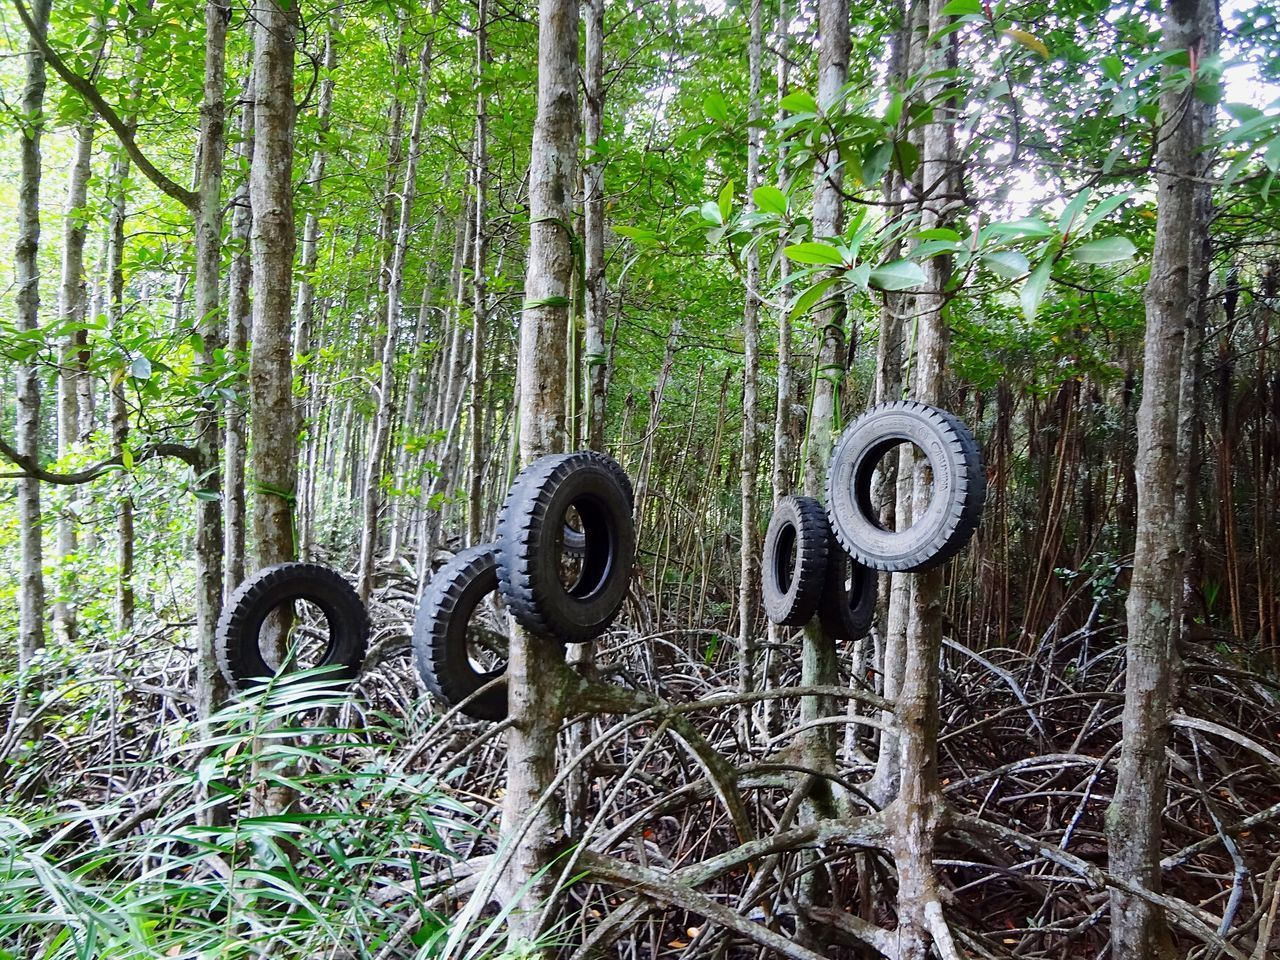 tree, tree trunk, forest, no people, day, outdoors, growth, nature, tire